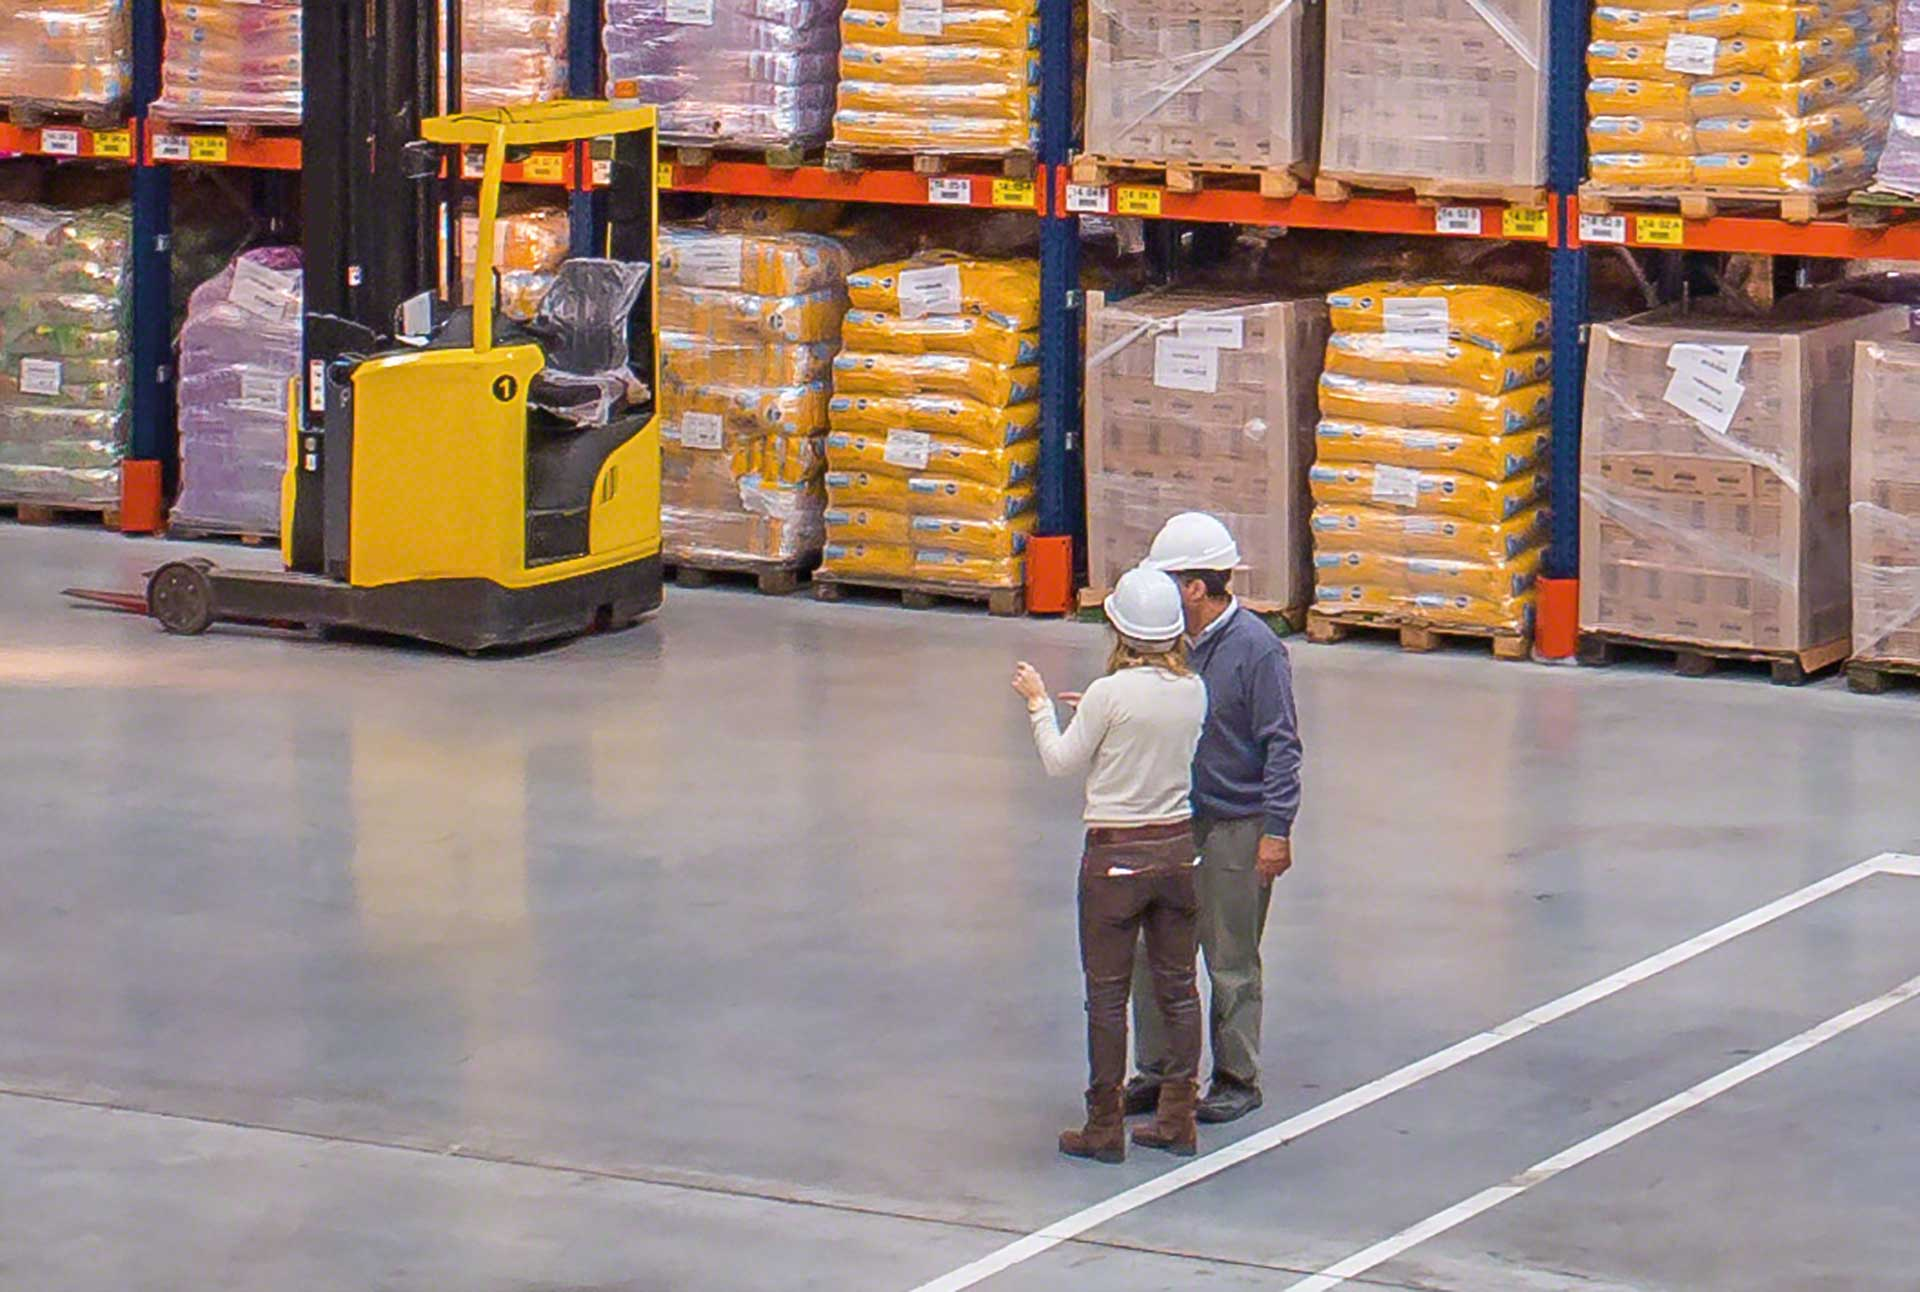 The logistics manager is responsible for supervising and managing all processes that take place in a warehouse